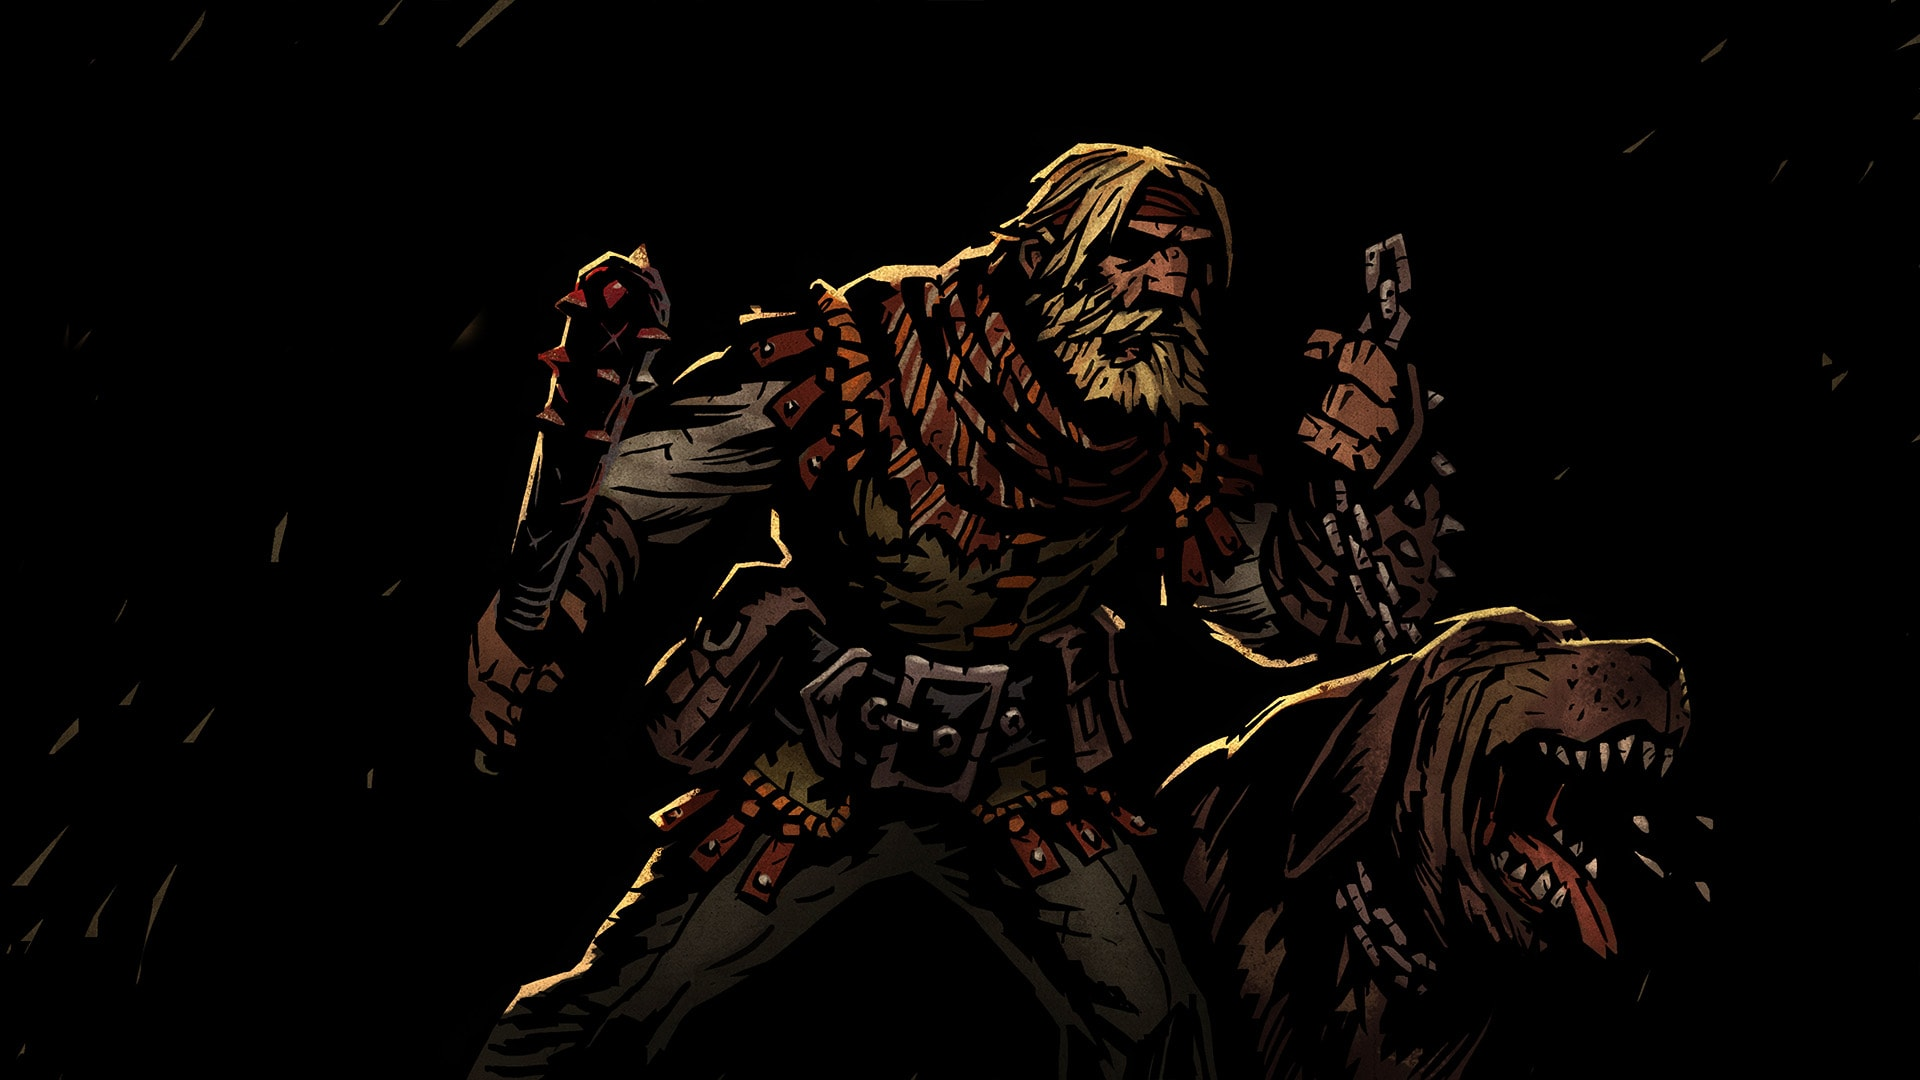 Darkest Dungeon: Hound Master Wallpapers